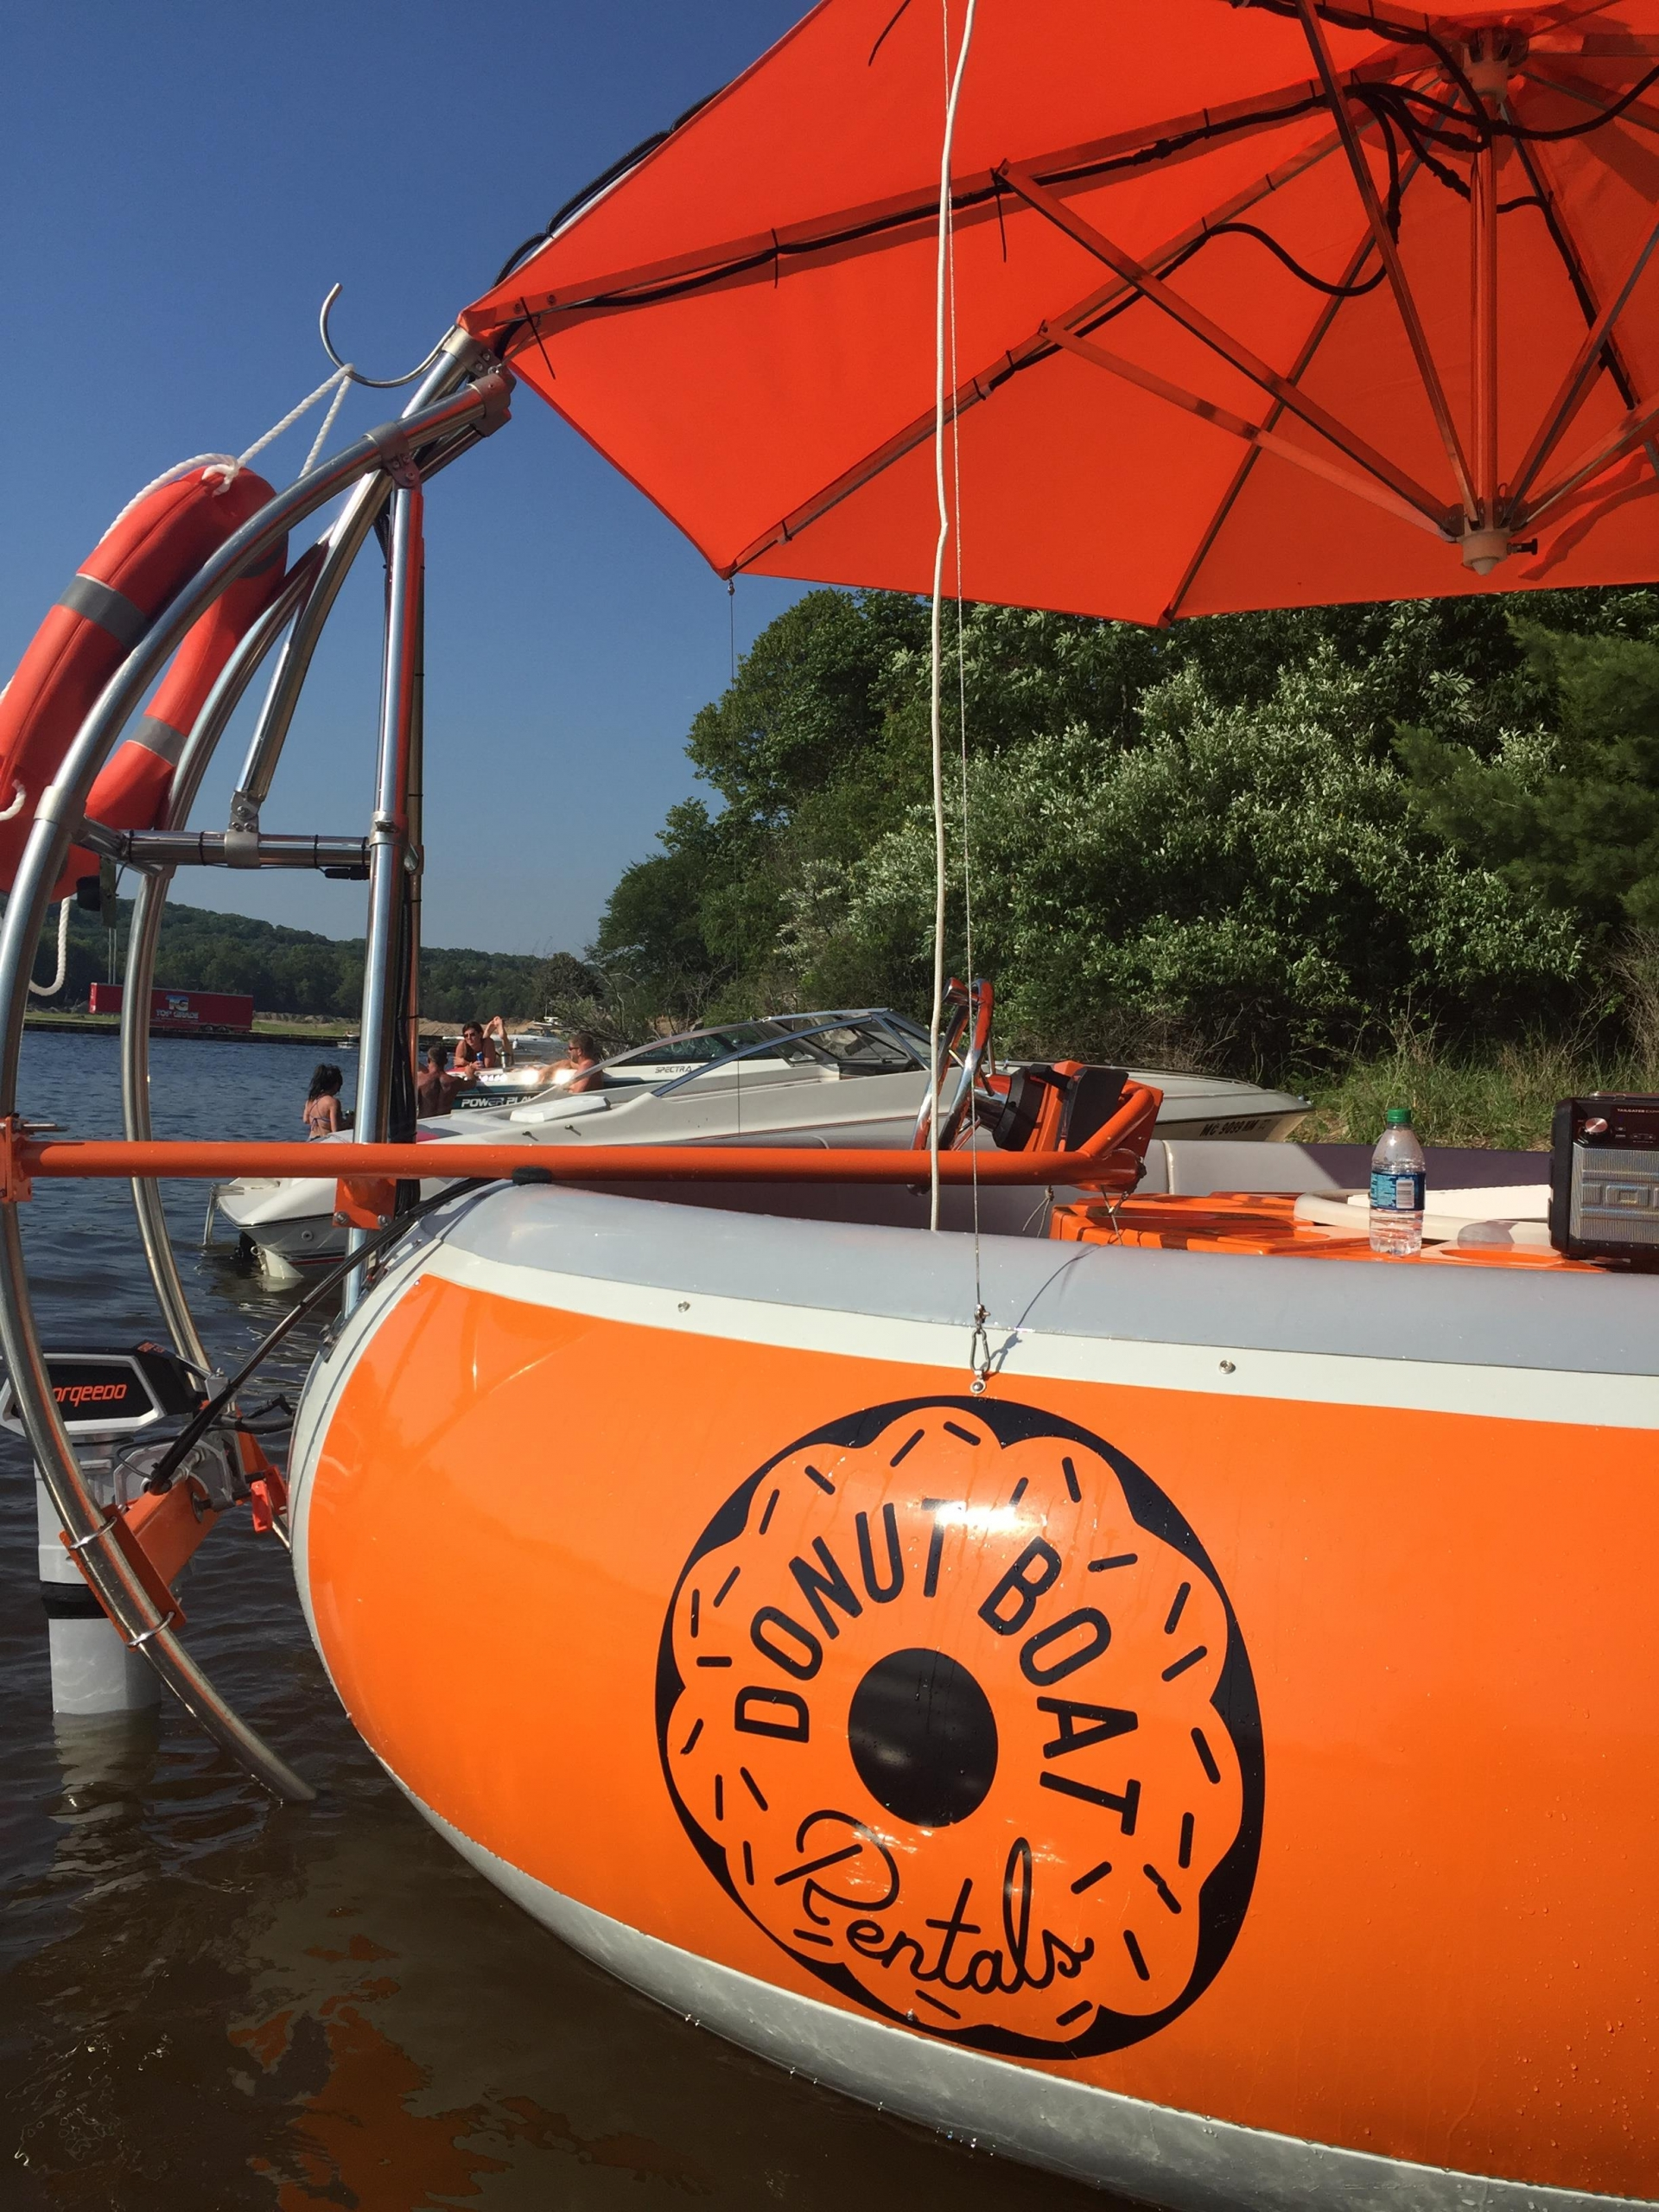 Donut Boats seat up to 10 people